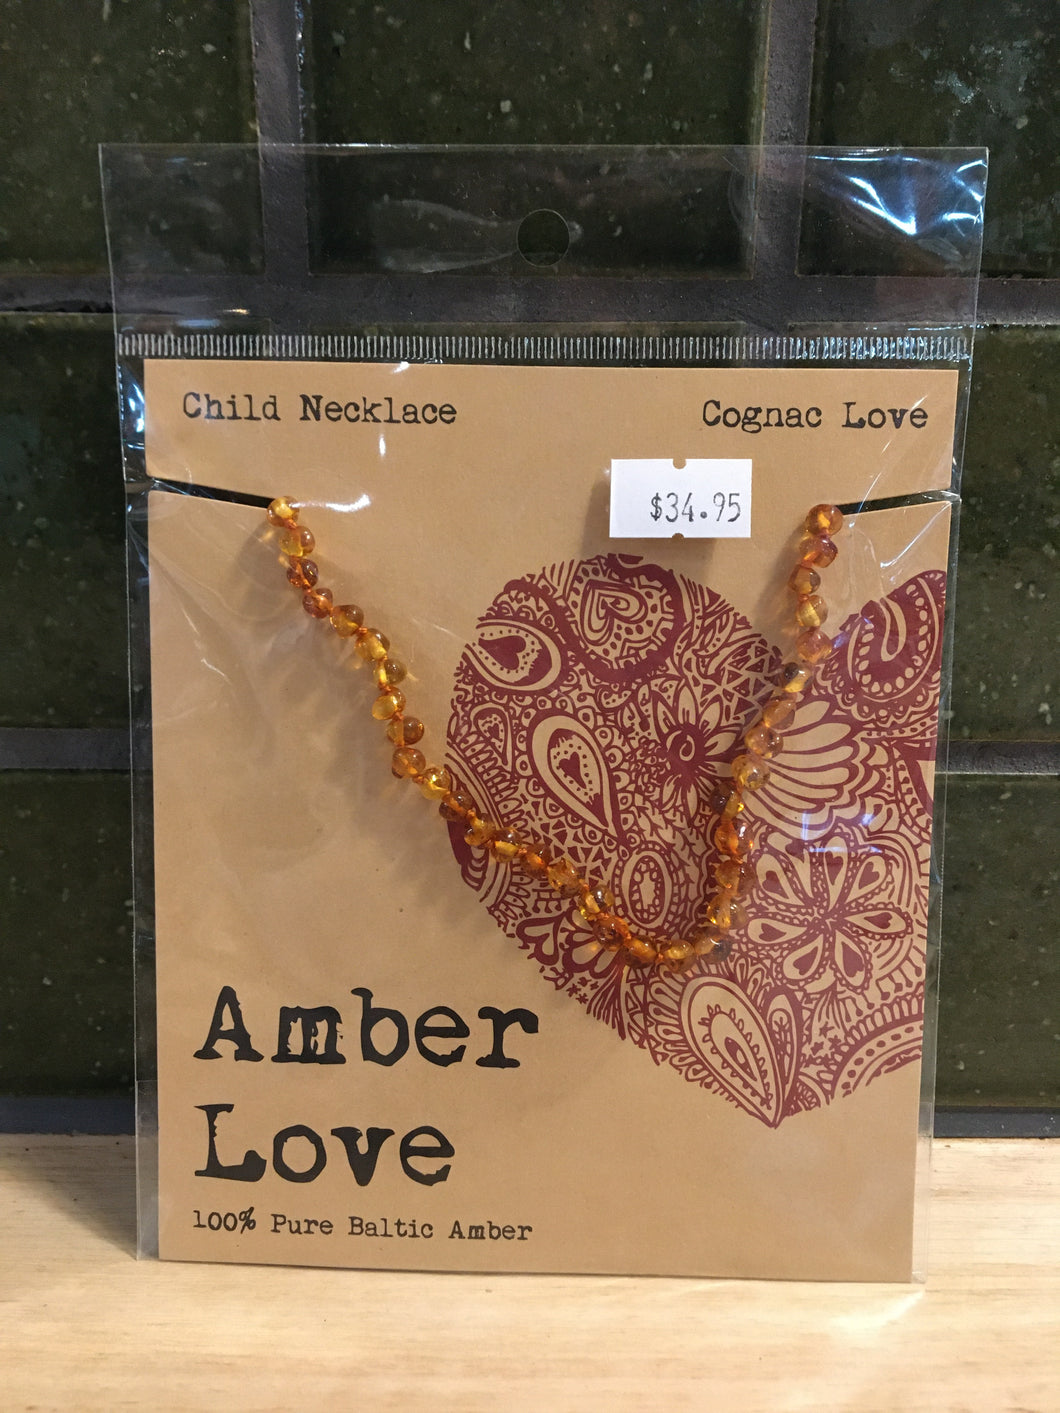 Amber Love Necklace - Cognac Love - Child